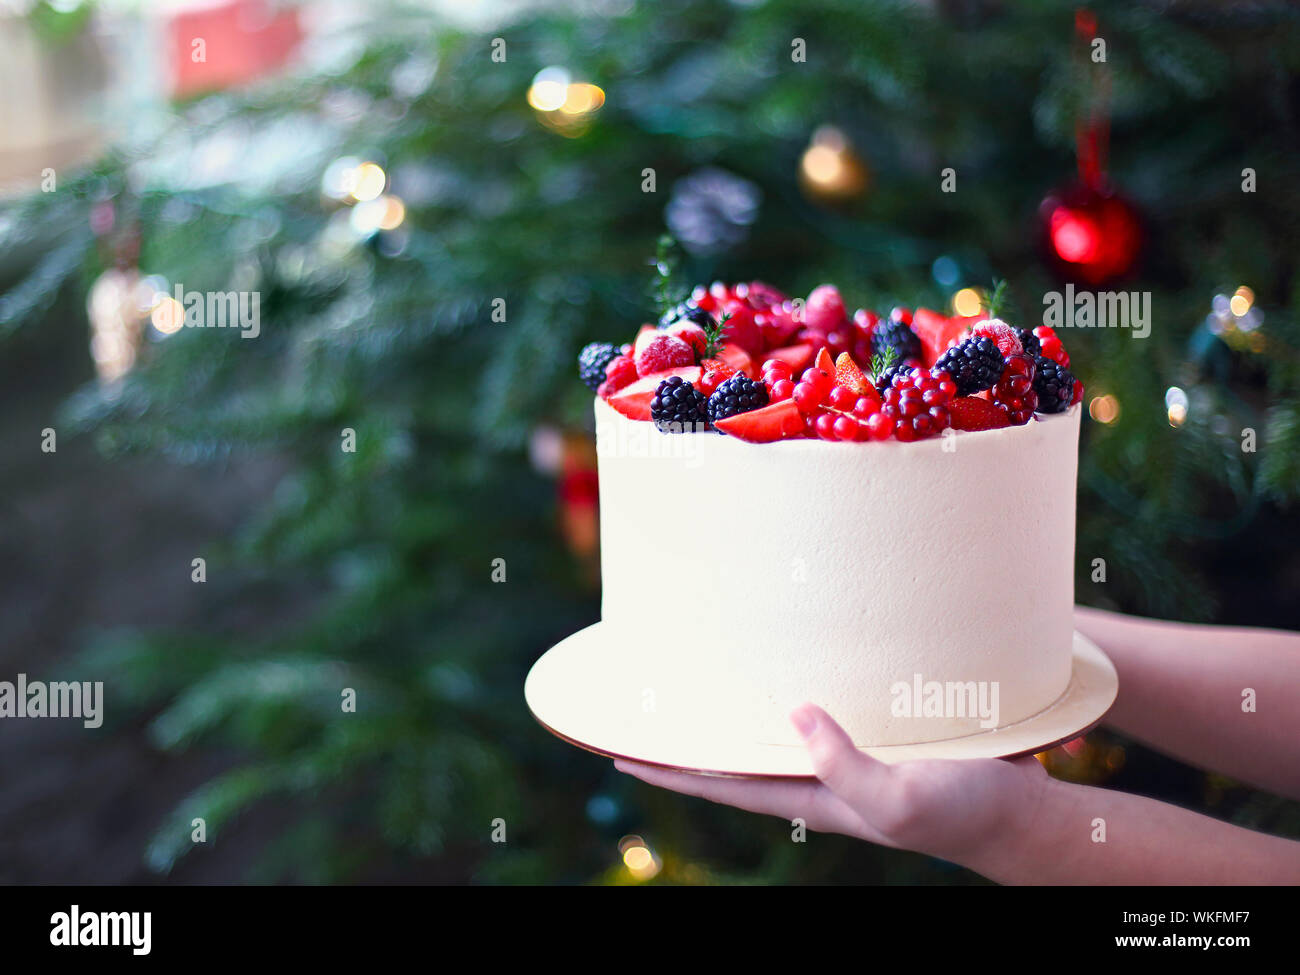 Woman holding Christmas Cake decorated with berries by the Christmas tree Stock Photo